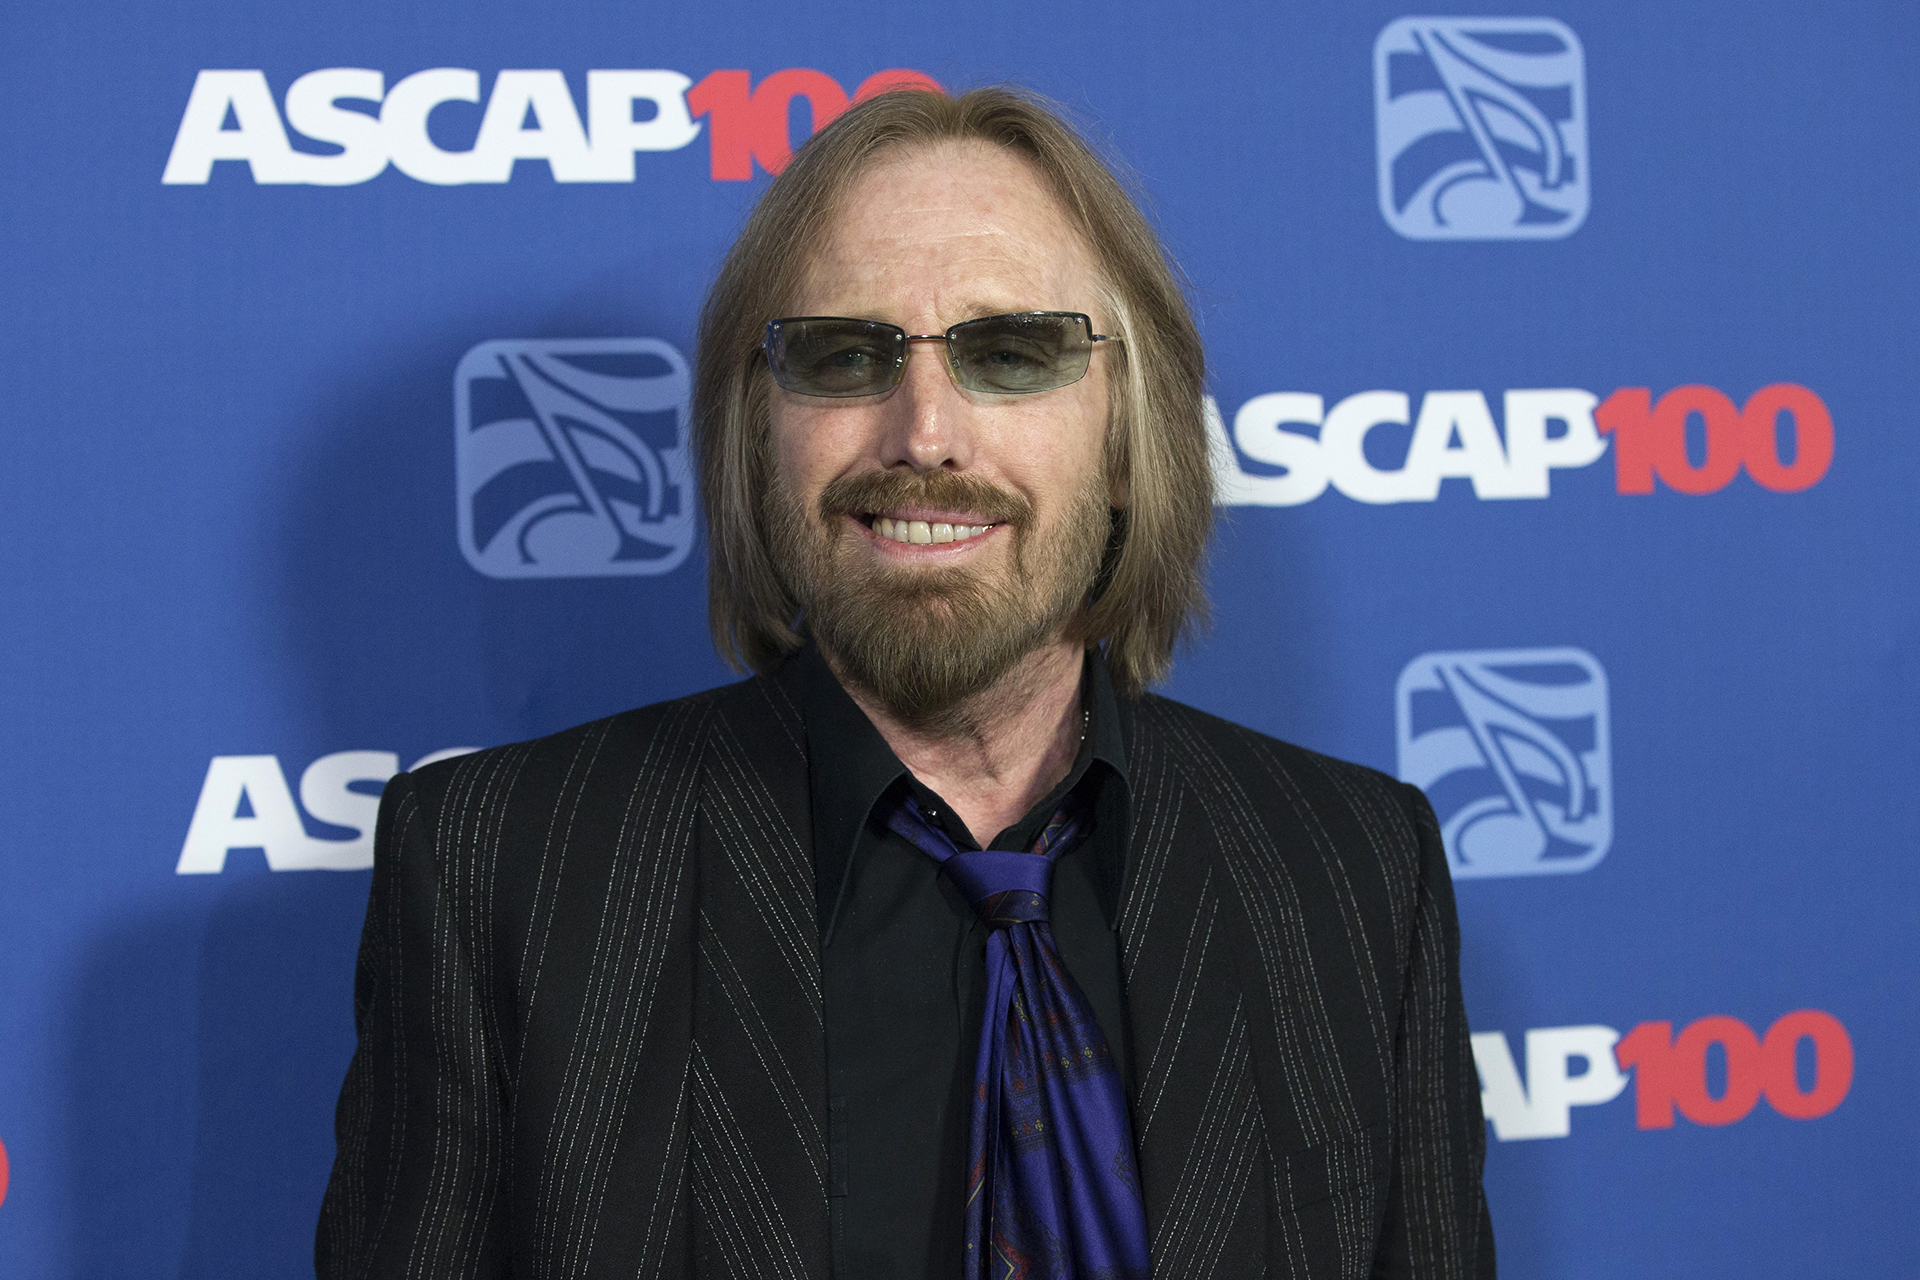 Tom Petty's stolen guns, unreleased music recovered by police after burglary, guitars still missing